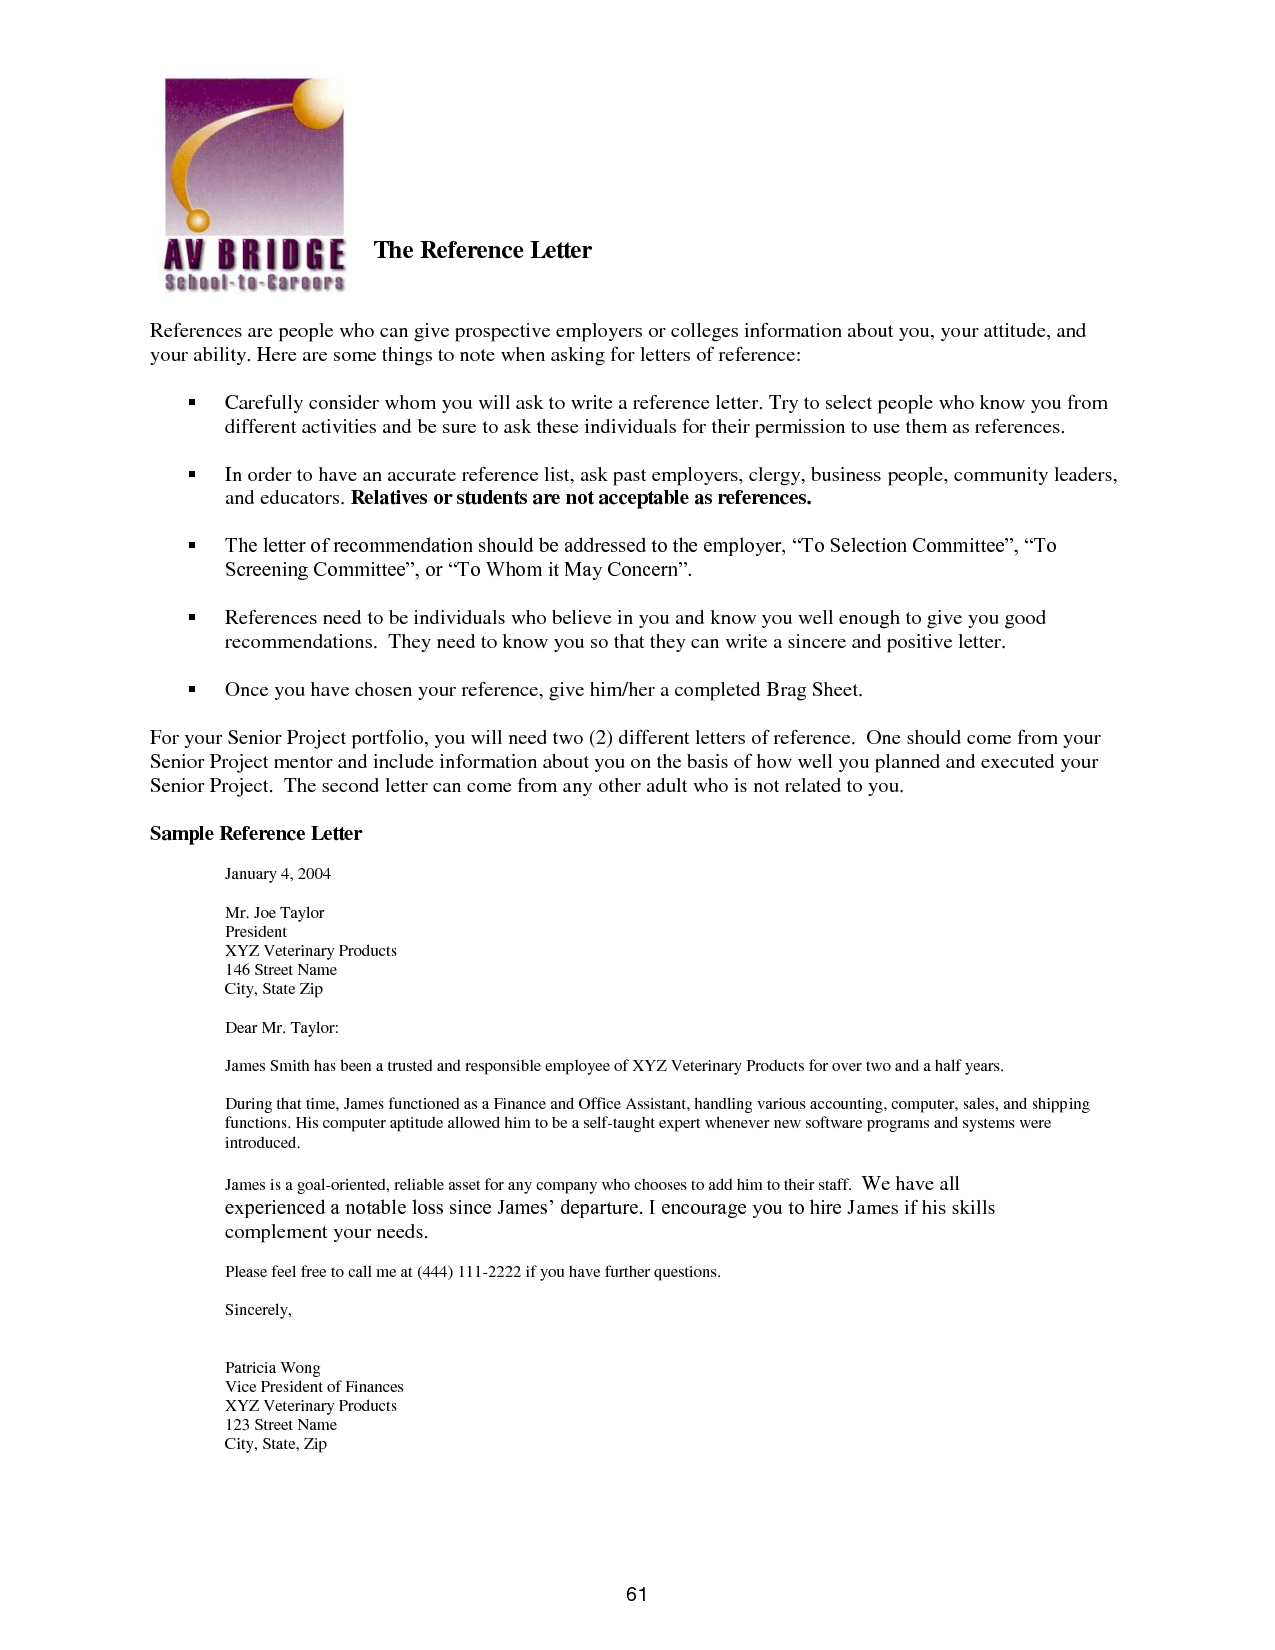 Free Sample Personal Reference Letter Template - Employee Letter Of Re Mendation Examples Acurnamedia